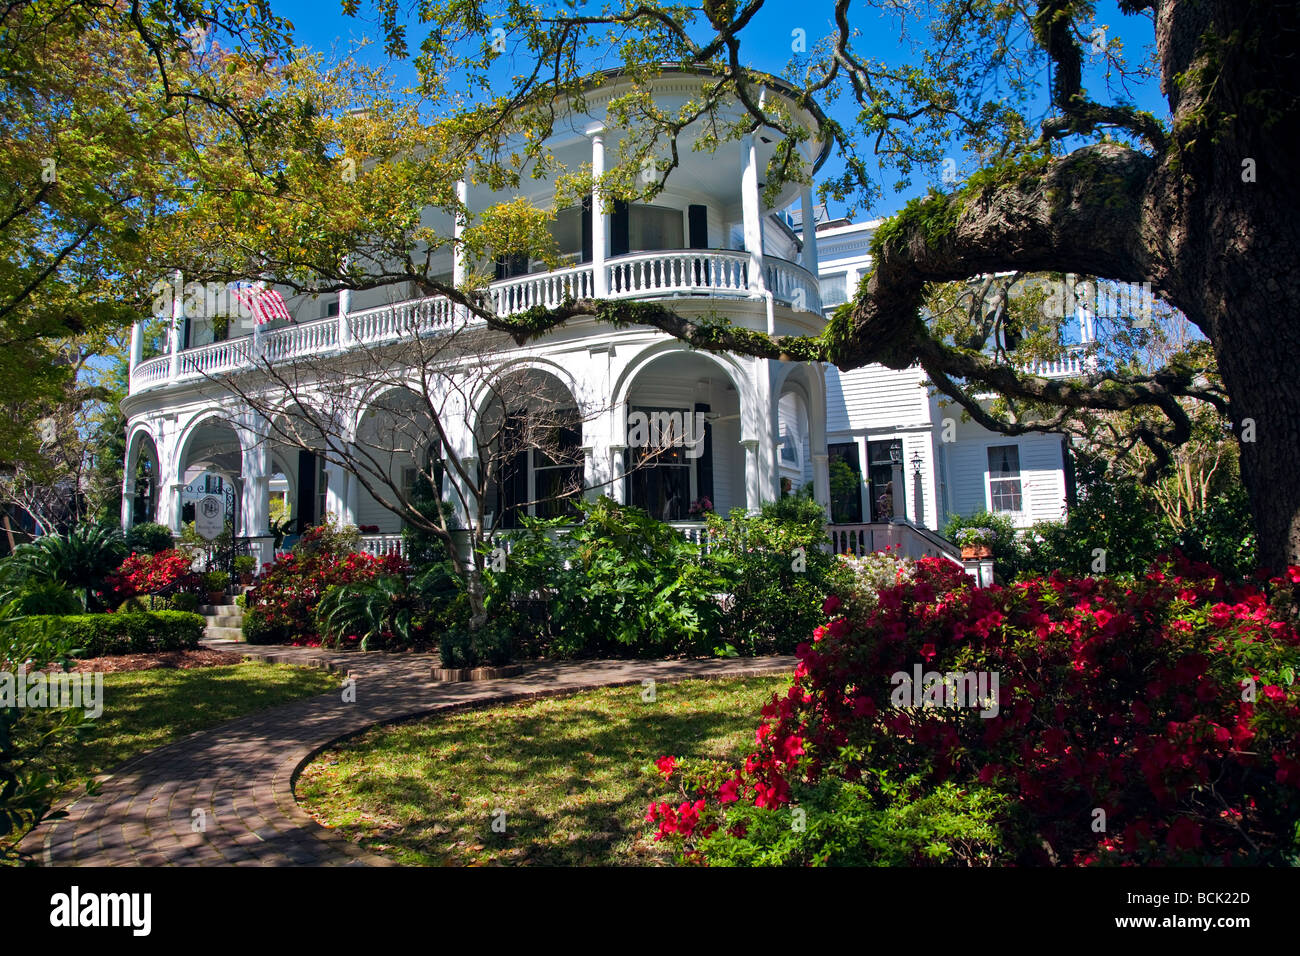 10 Historic Houses Gracing Charleston West Virginia also Mcleod additionally From Flowering Azaleas To History And Affordability Summerville Is The Ideal Lowcountry Town moreover Mount Pleasant further Festive Tour Charlestons Decor. on historic charleston homes